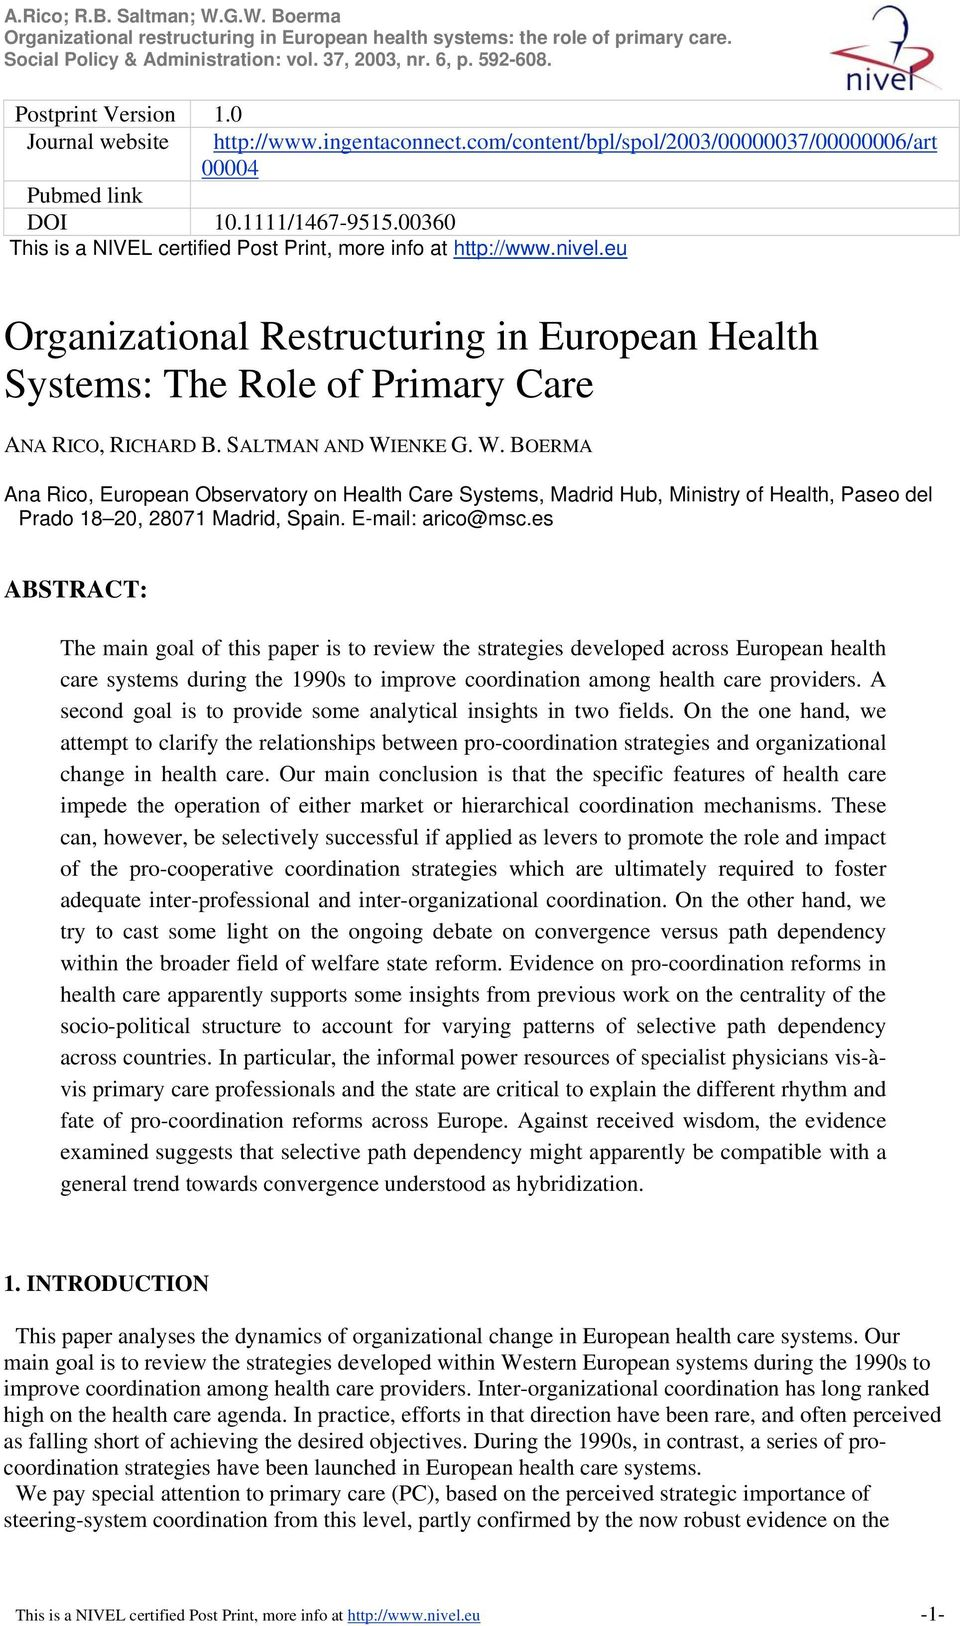 SALTMAN AND WIENKE G. W. BOERMA Ana Rico, European Observatory on Health Care Systems, Madrid Hub, Ministry of Health, Paseo del Prado 18 20, 28071 Madrid, Spain. E-mail: arico@msc.